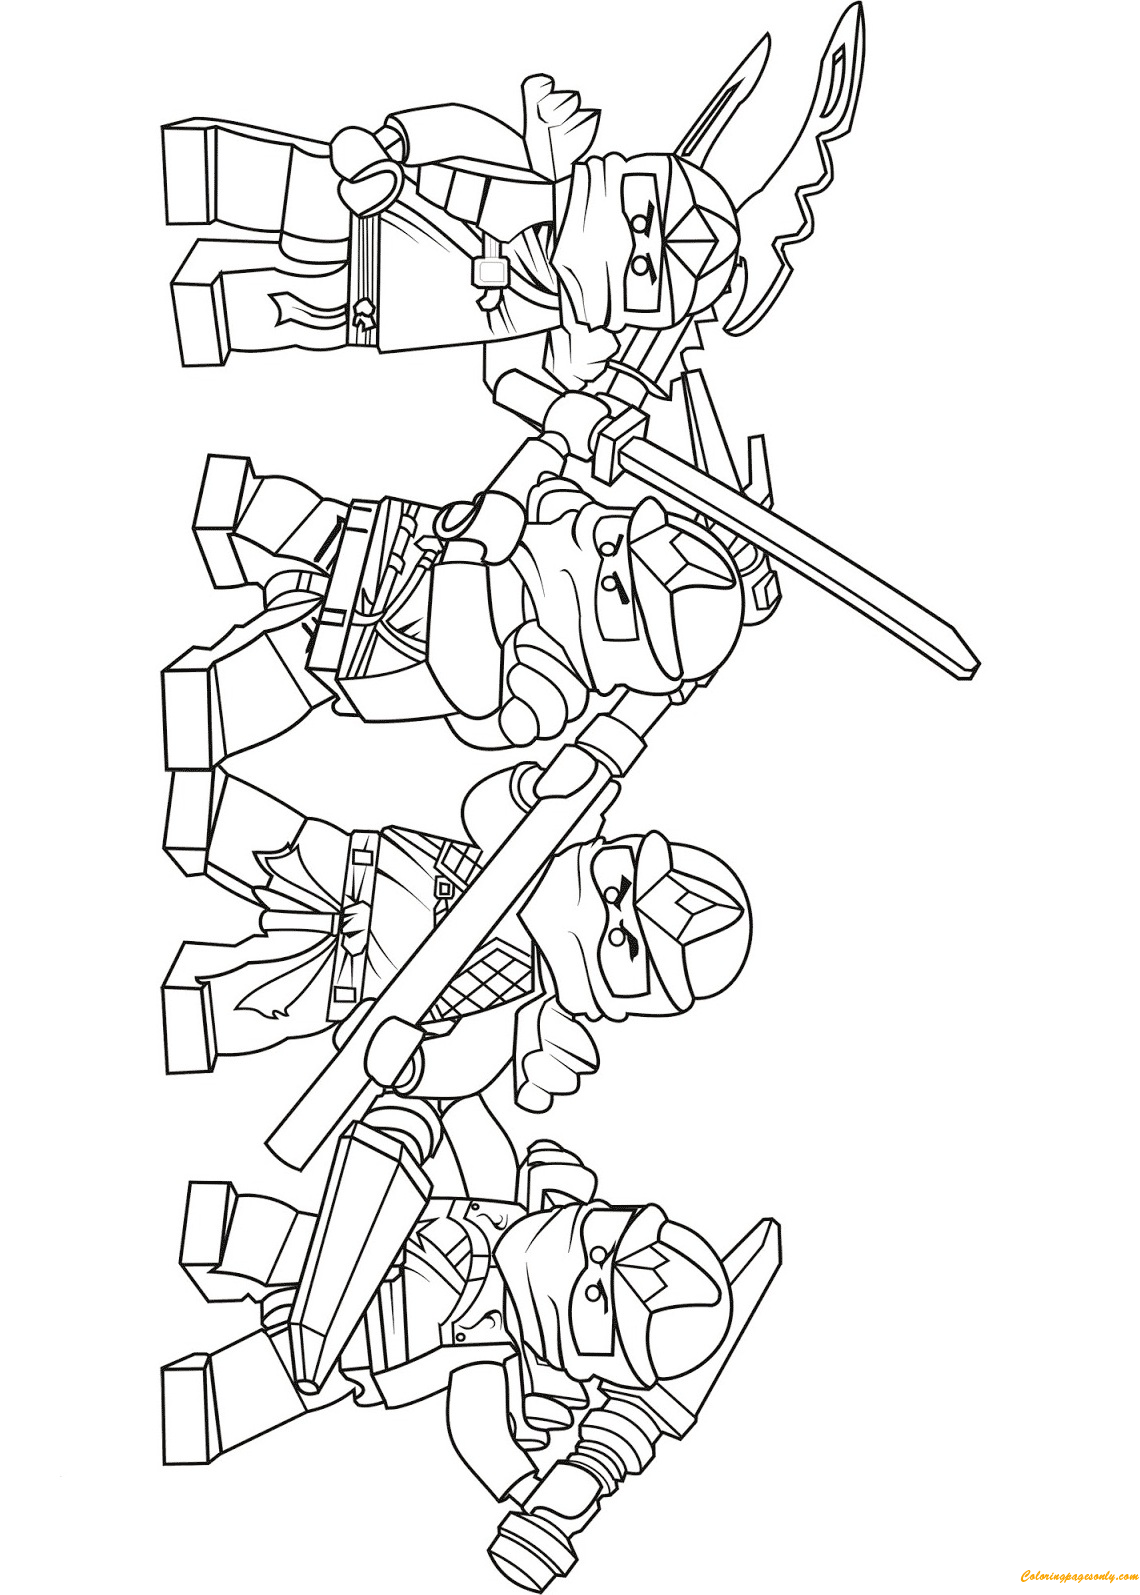 lego ninjago coloring pages cole zx - team of lego ninjago zx coloring page free coloring